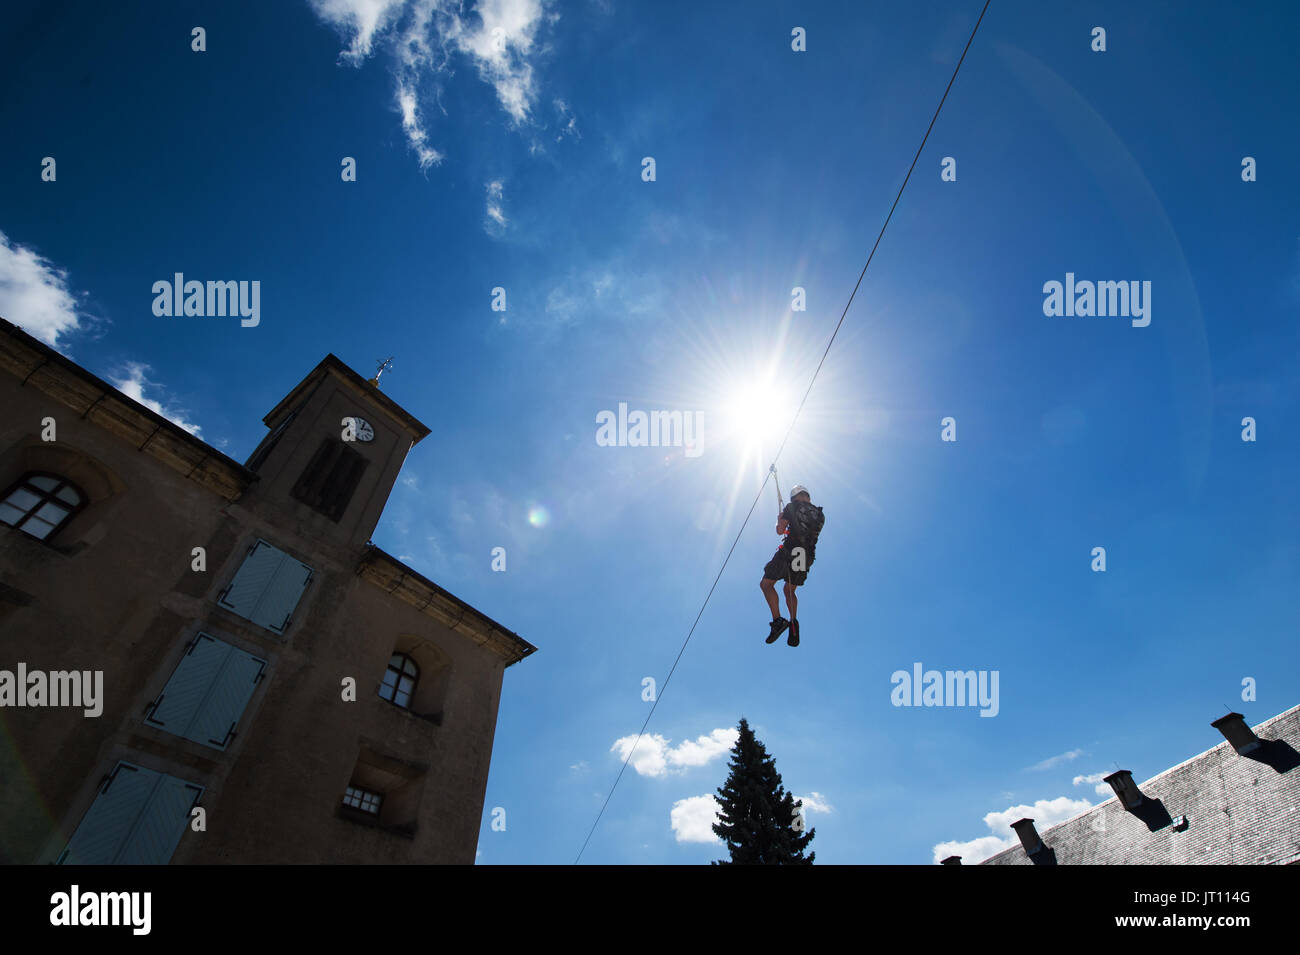 Konigstein, Germany. 05th Aug, 2017. A man is using the zip line during the 'Festung Aktiv' outdoor sports festival in Konigstein, Germany, 05 August 2017. The festival offers visitors workshops, shows and presentations related to active sports. Photo: Arno Burgi/dpa-Zentralbild/dpa/Alamy Live News - Stock Image